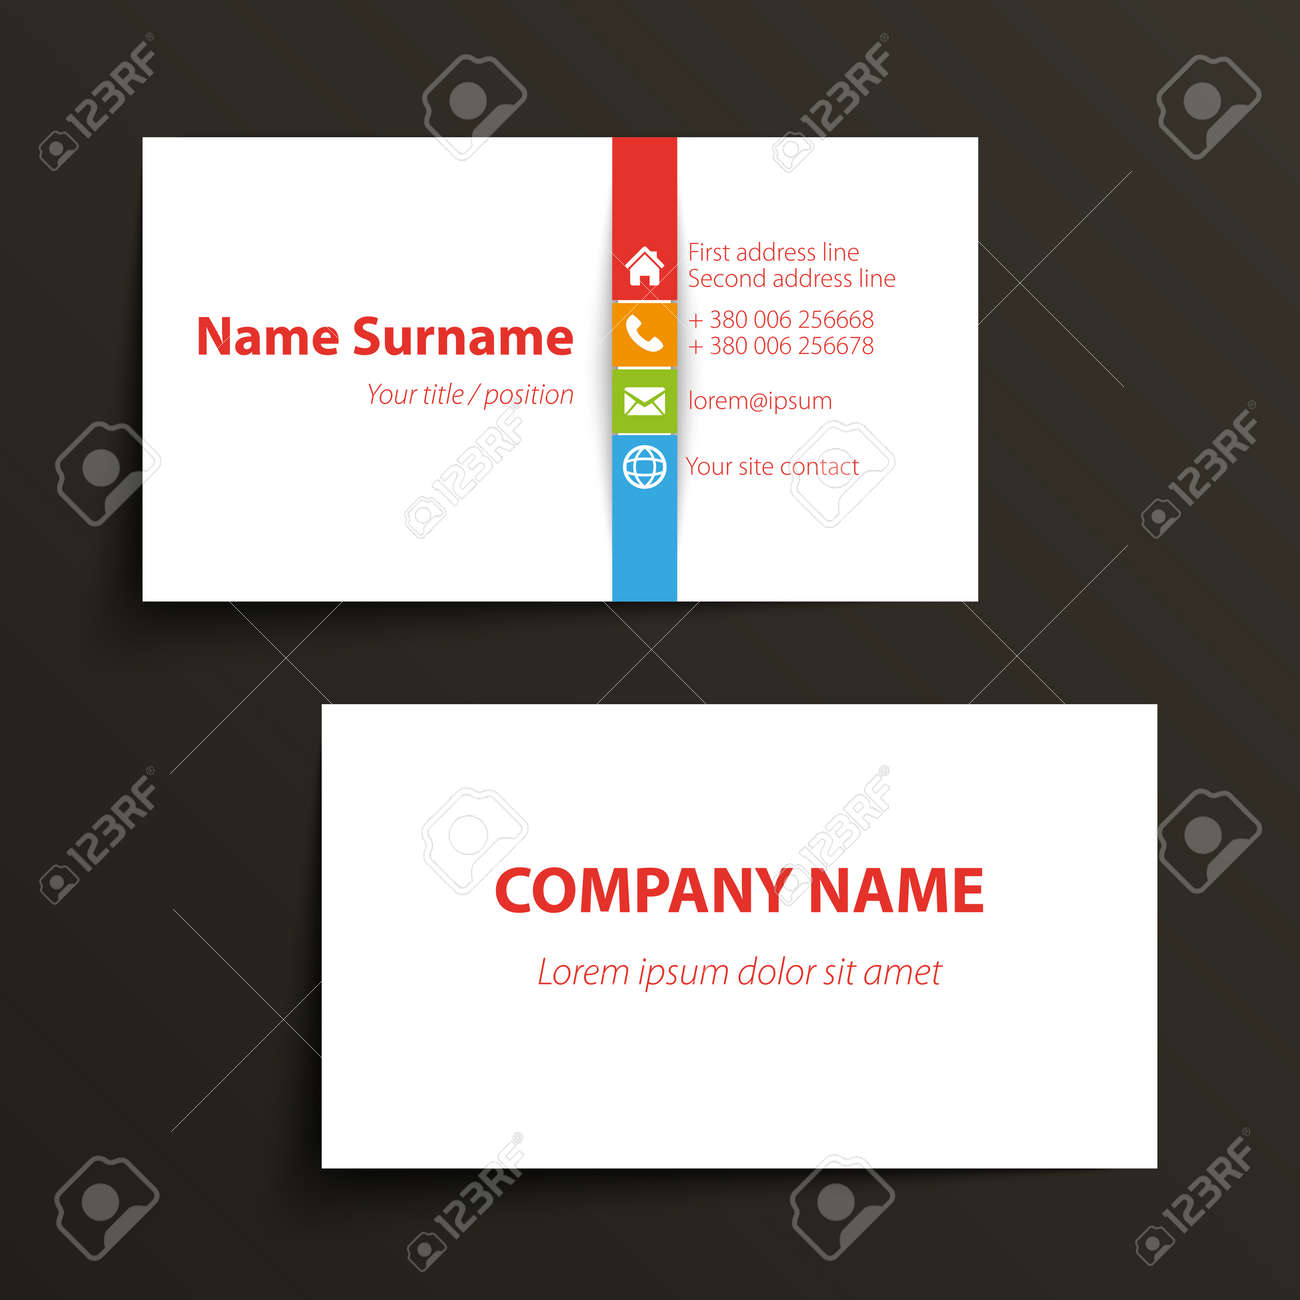 Modern simple business card template vector format royalty free modern simple business card template vector format stock vector 31276557 colourmoves